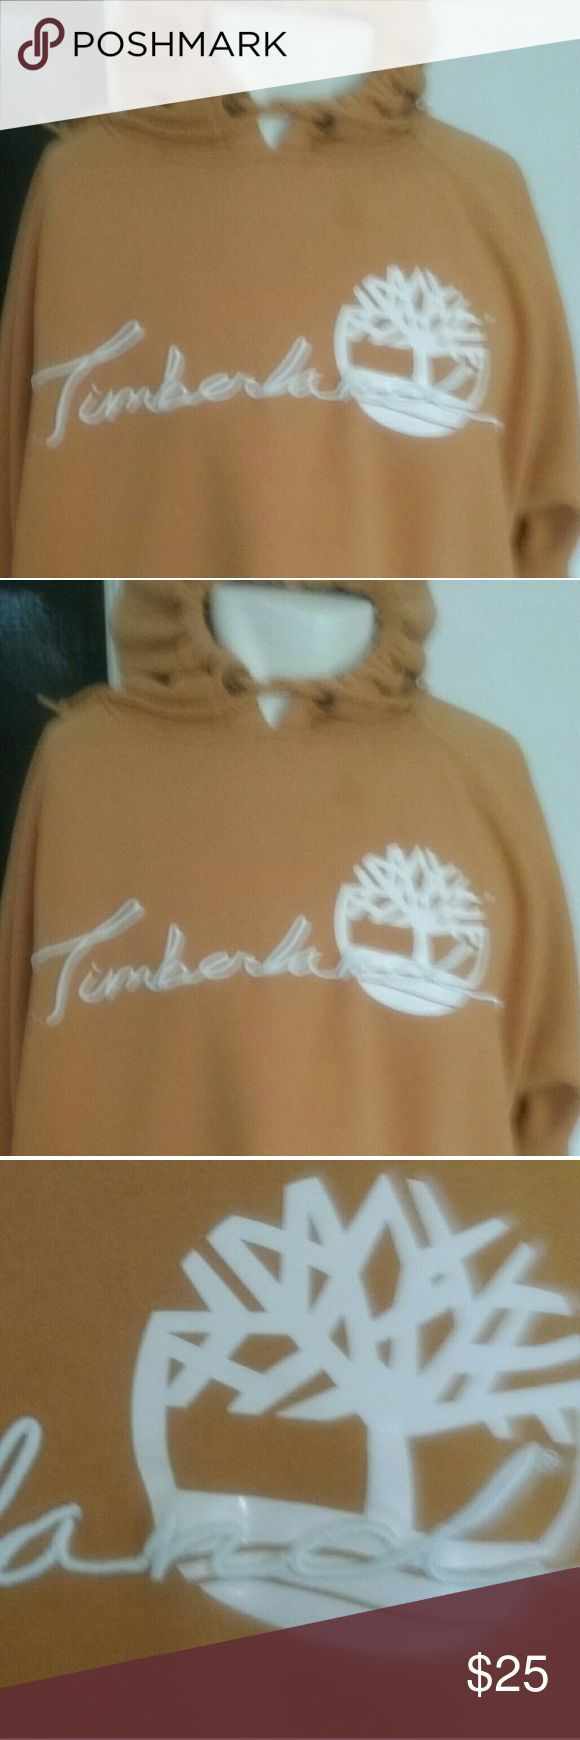 Timberland hoodie $25 SZ 3x /4 x? + free gift Timberland hoodie $25 SZ 3x /4 x? No size label in the hoodie sizes estimated to be 3x or 4X + free gift any item in this closet price $15 or less. Bundle the two items send me an offer for the highest price item and I will accept it. Timberland Shirts Sweatshirts & Hoodies